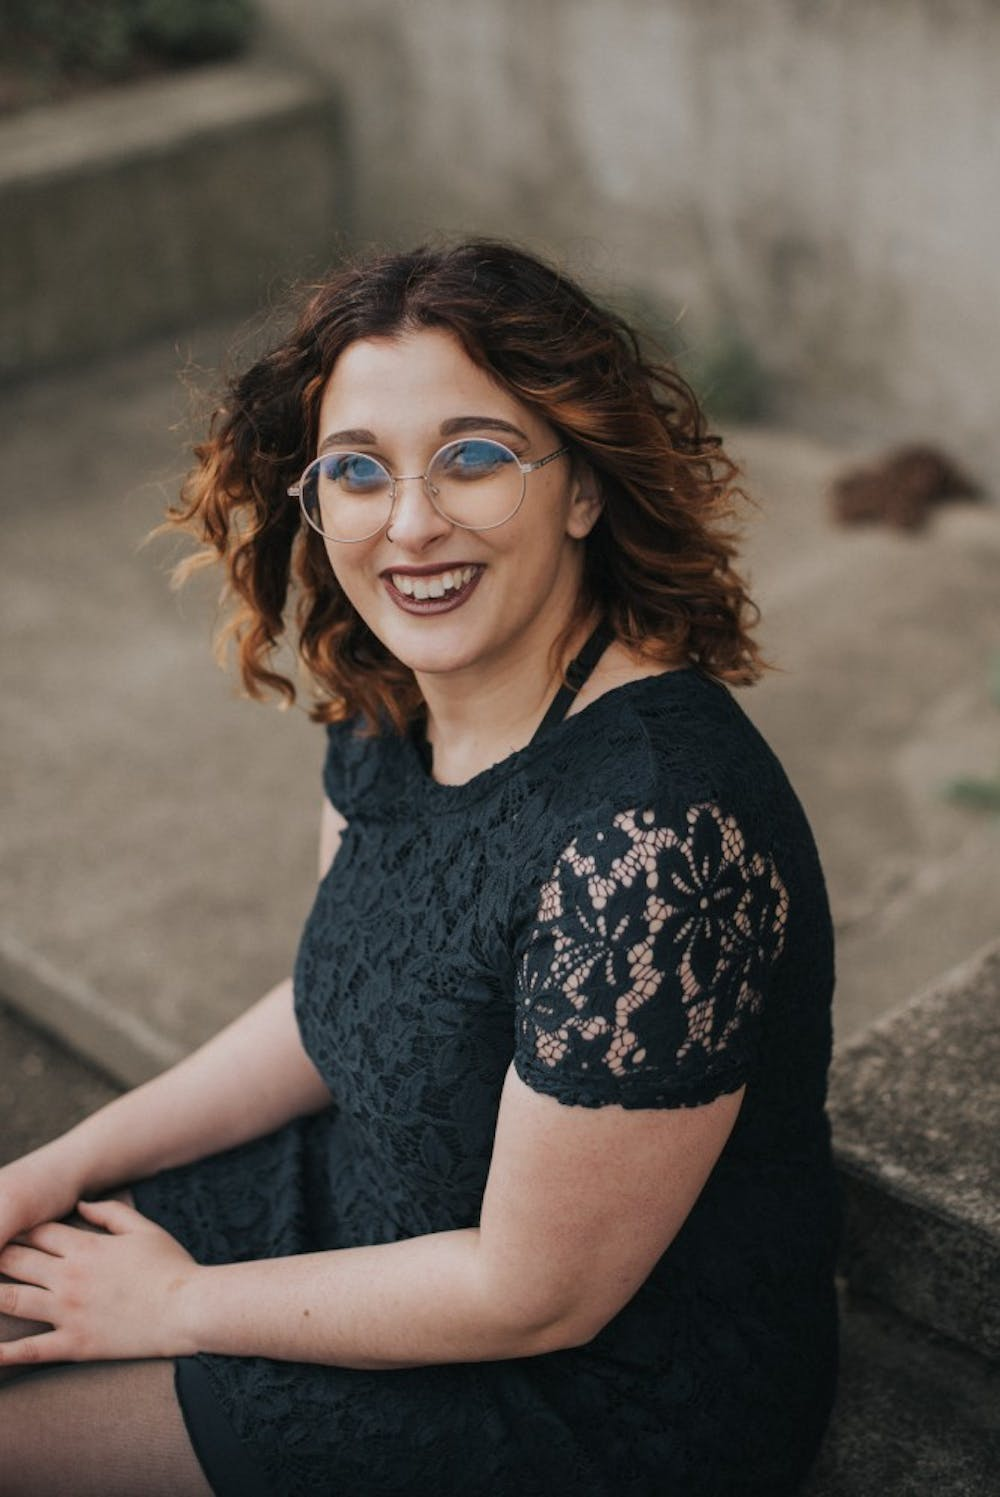 Graduate pursues passion with published creative works